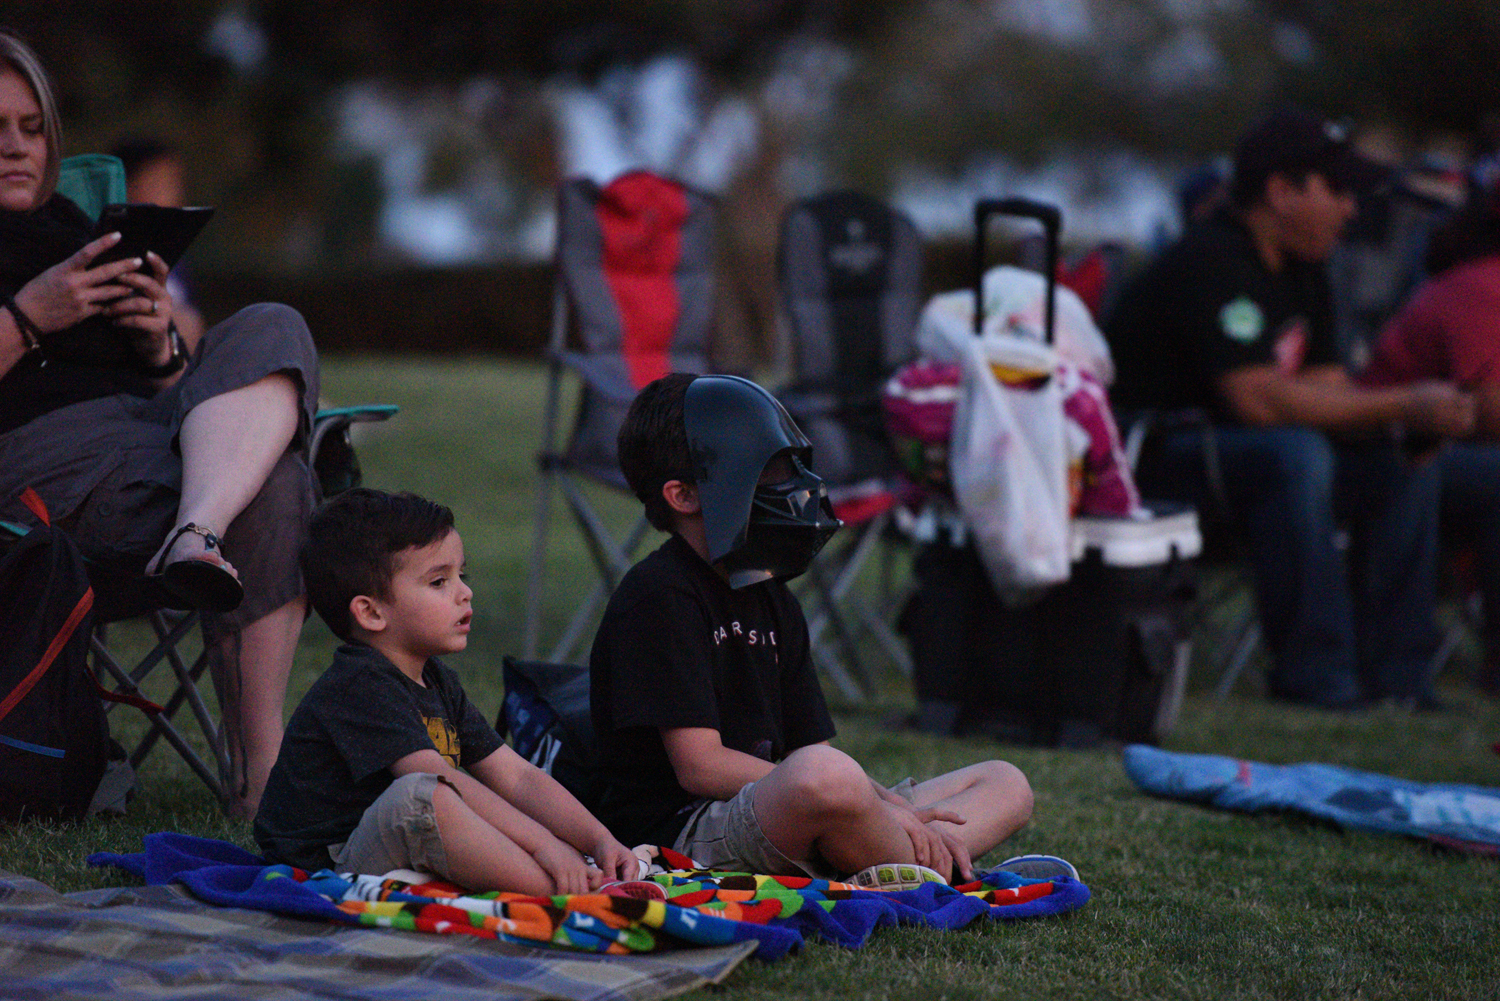 2nd Annual Red Raider Reels – 'Star Wars: The Force Awakens'